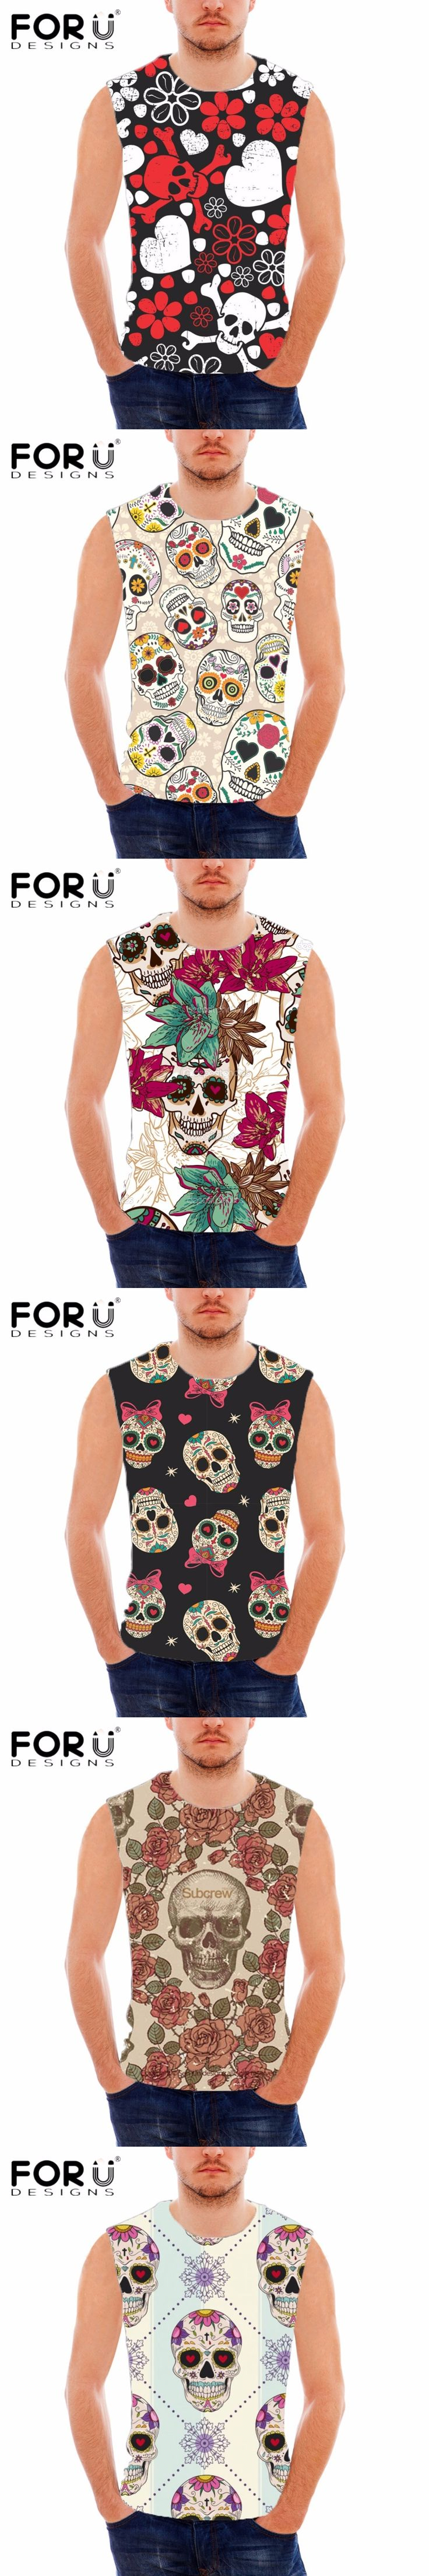 FORUDESIGNS Men's Summer Sleeveless Fitness Tank Top Punk Skulls Printed Breathable Vests For Man Workout Bodybuilding Tank Tops